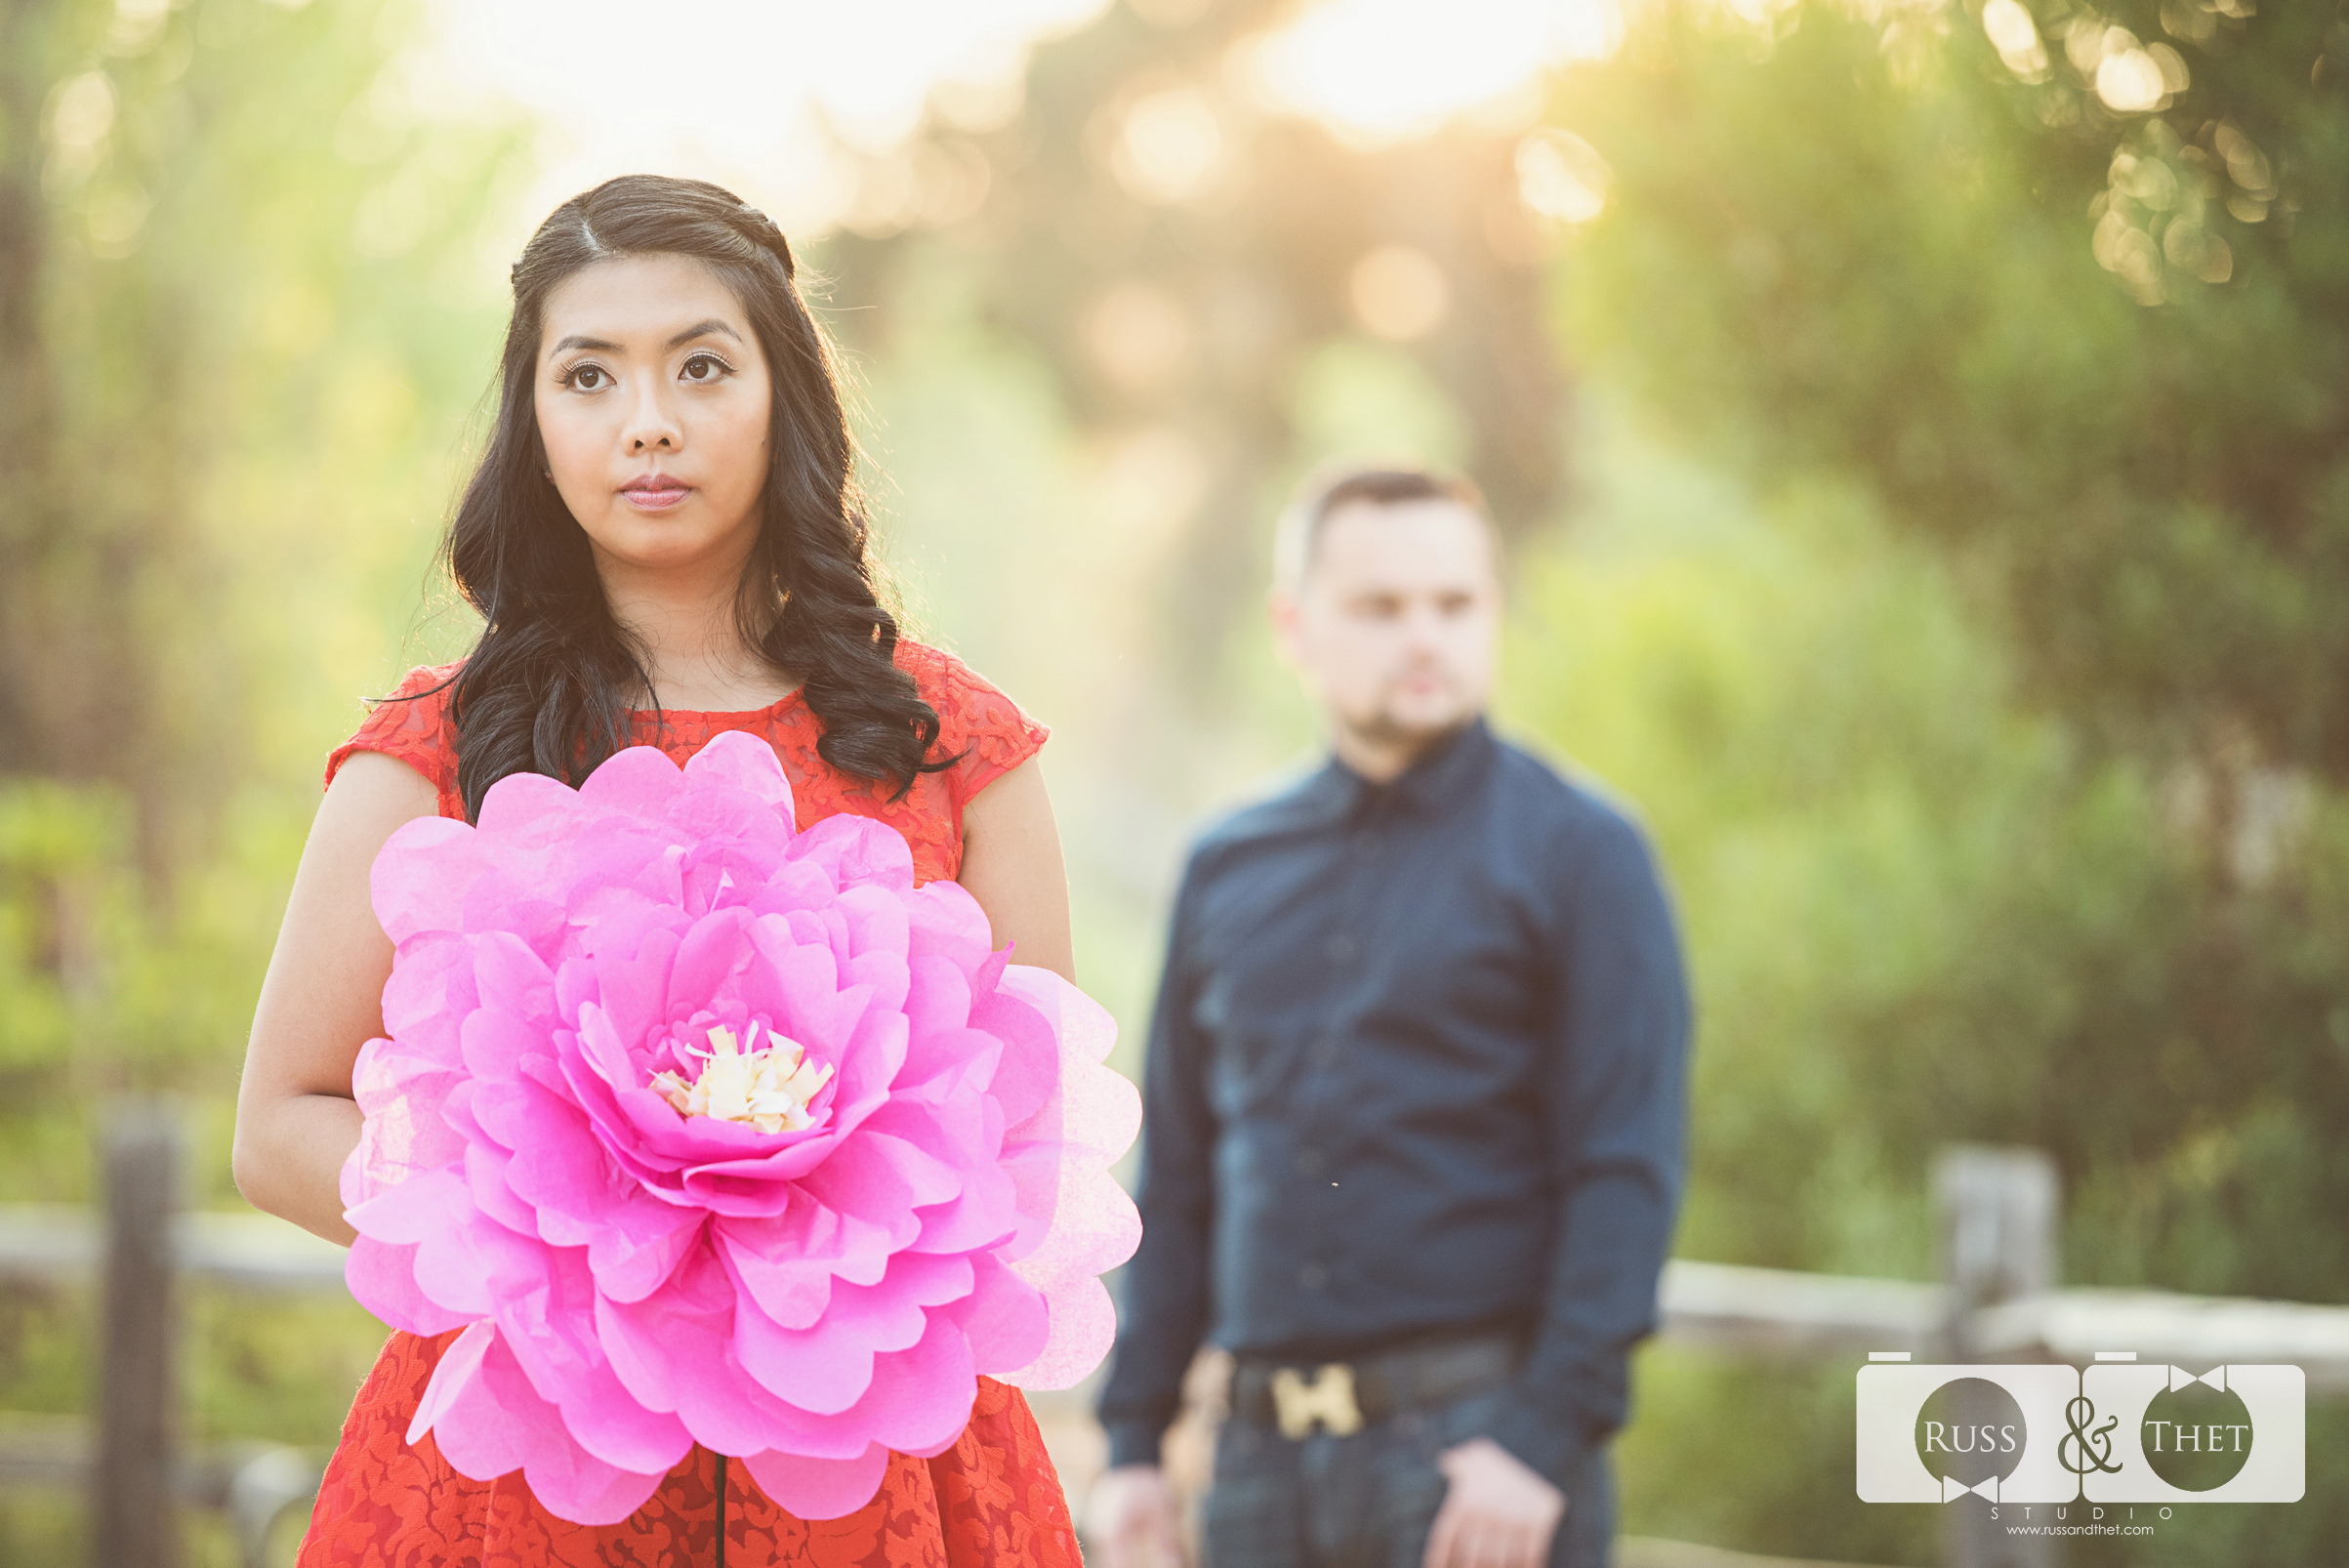 San-Juan-Capistrano-Engagement-Photographer (8).jpg